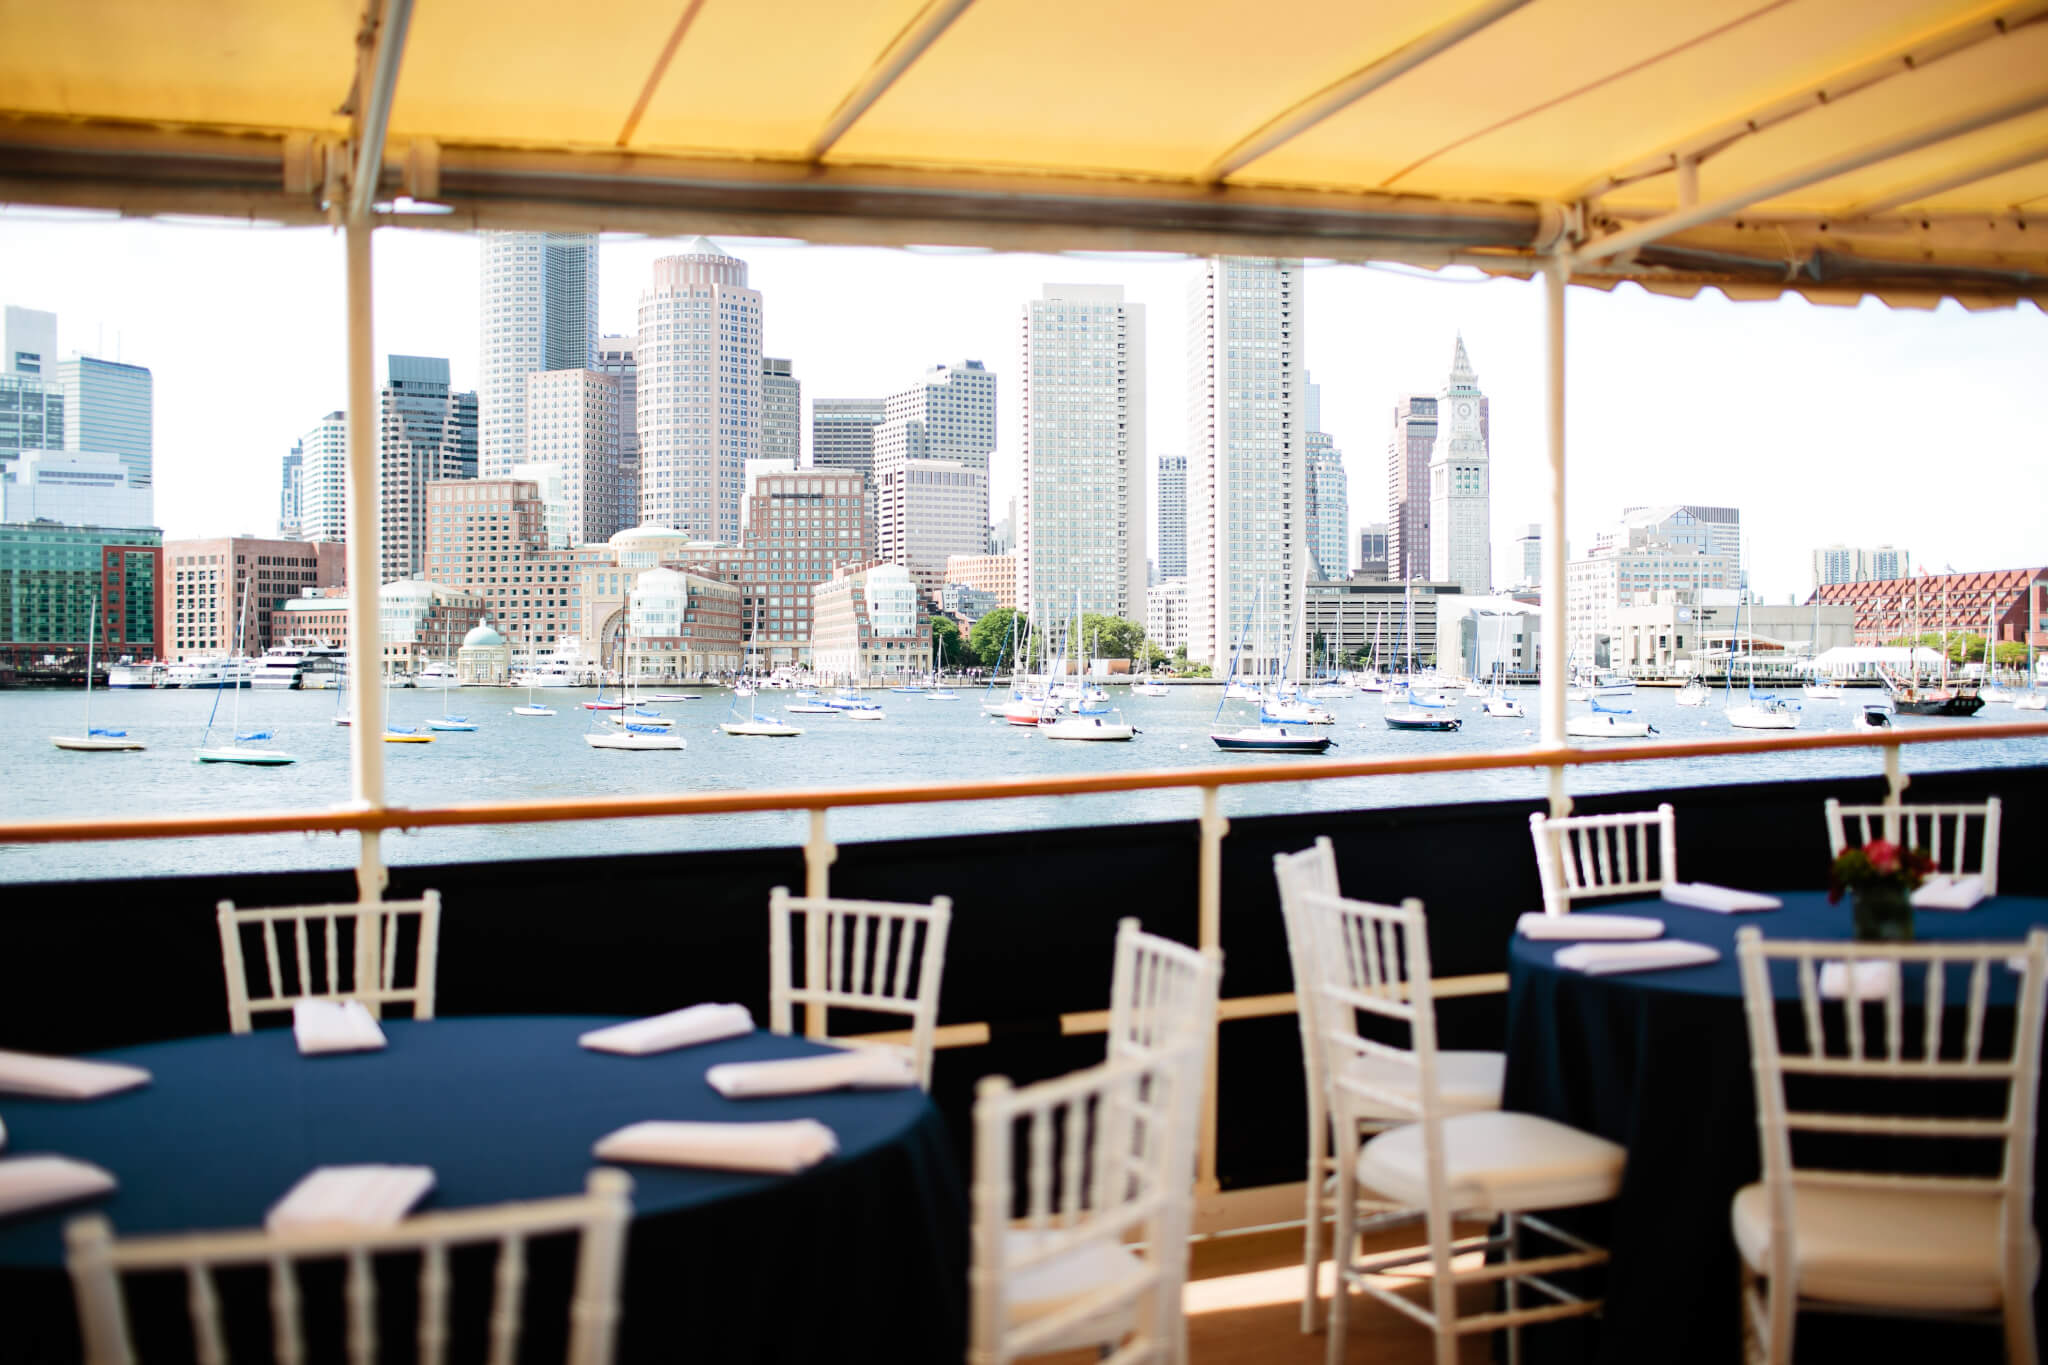 dining area aboard vessel with boston in the background